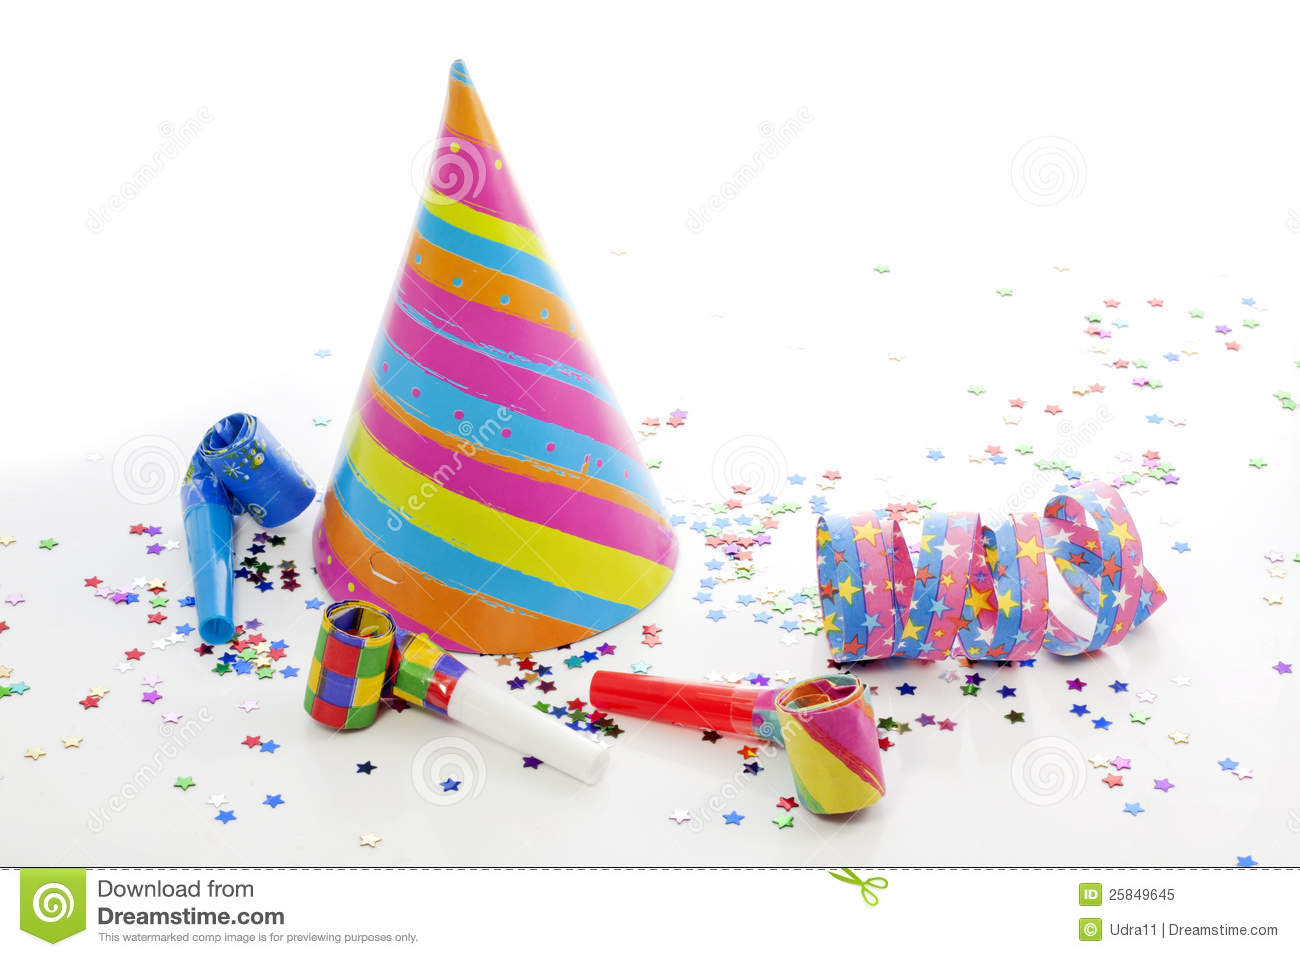 Party Birthday New Year Items Stock Image - Image of